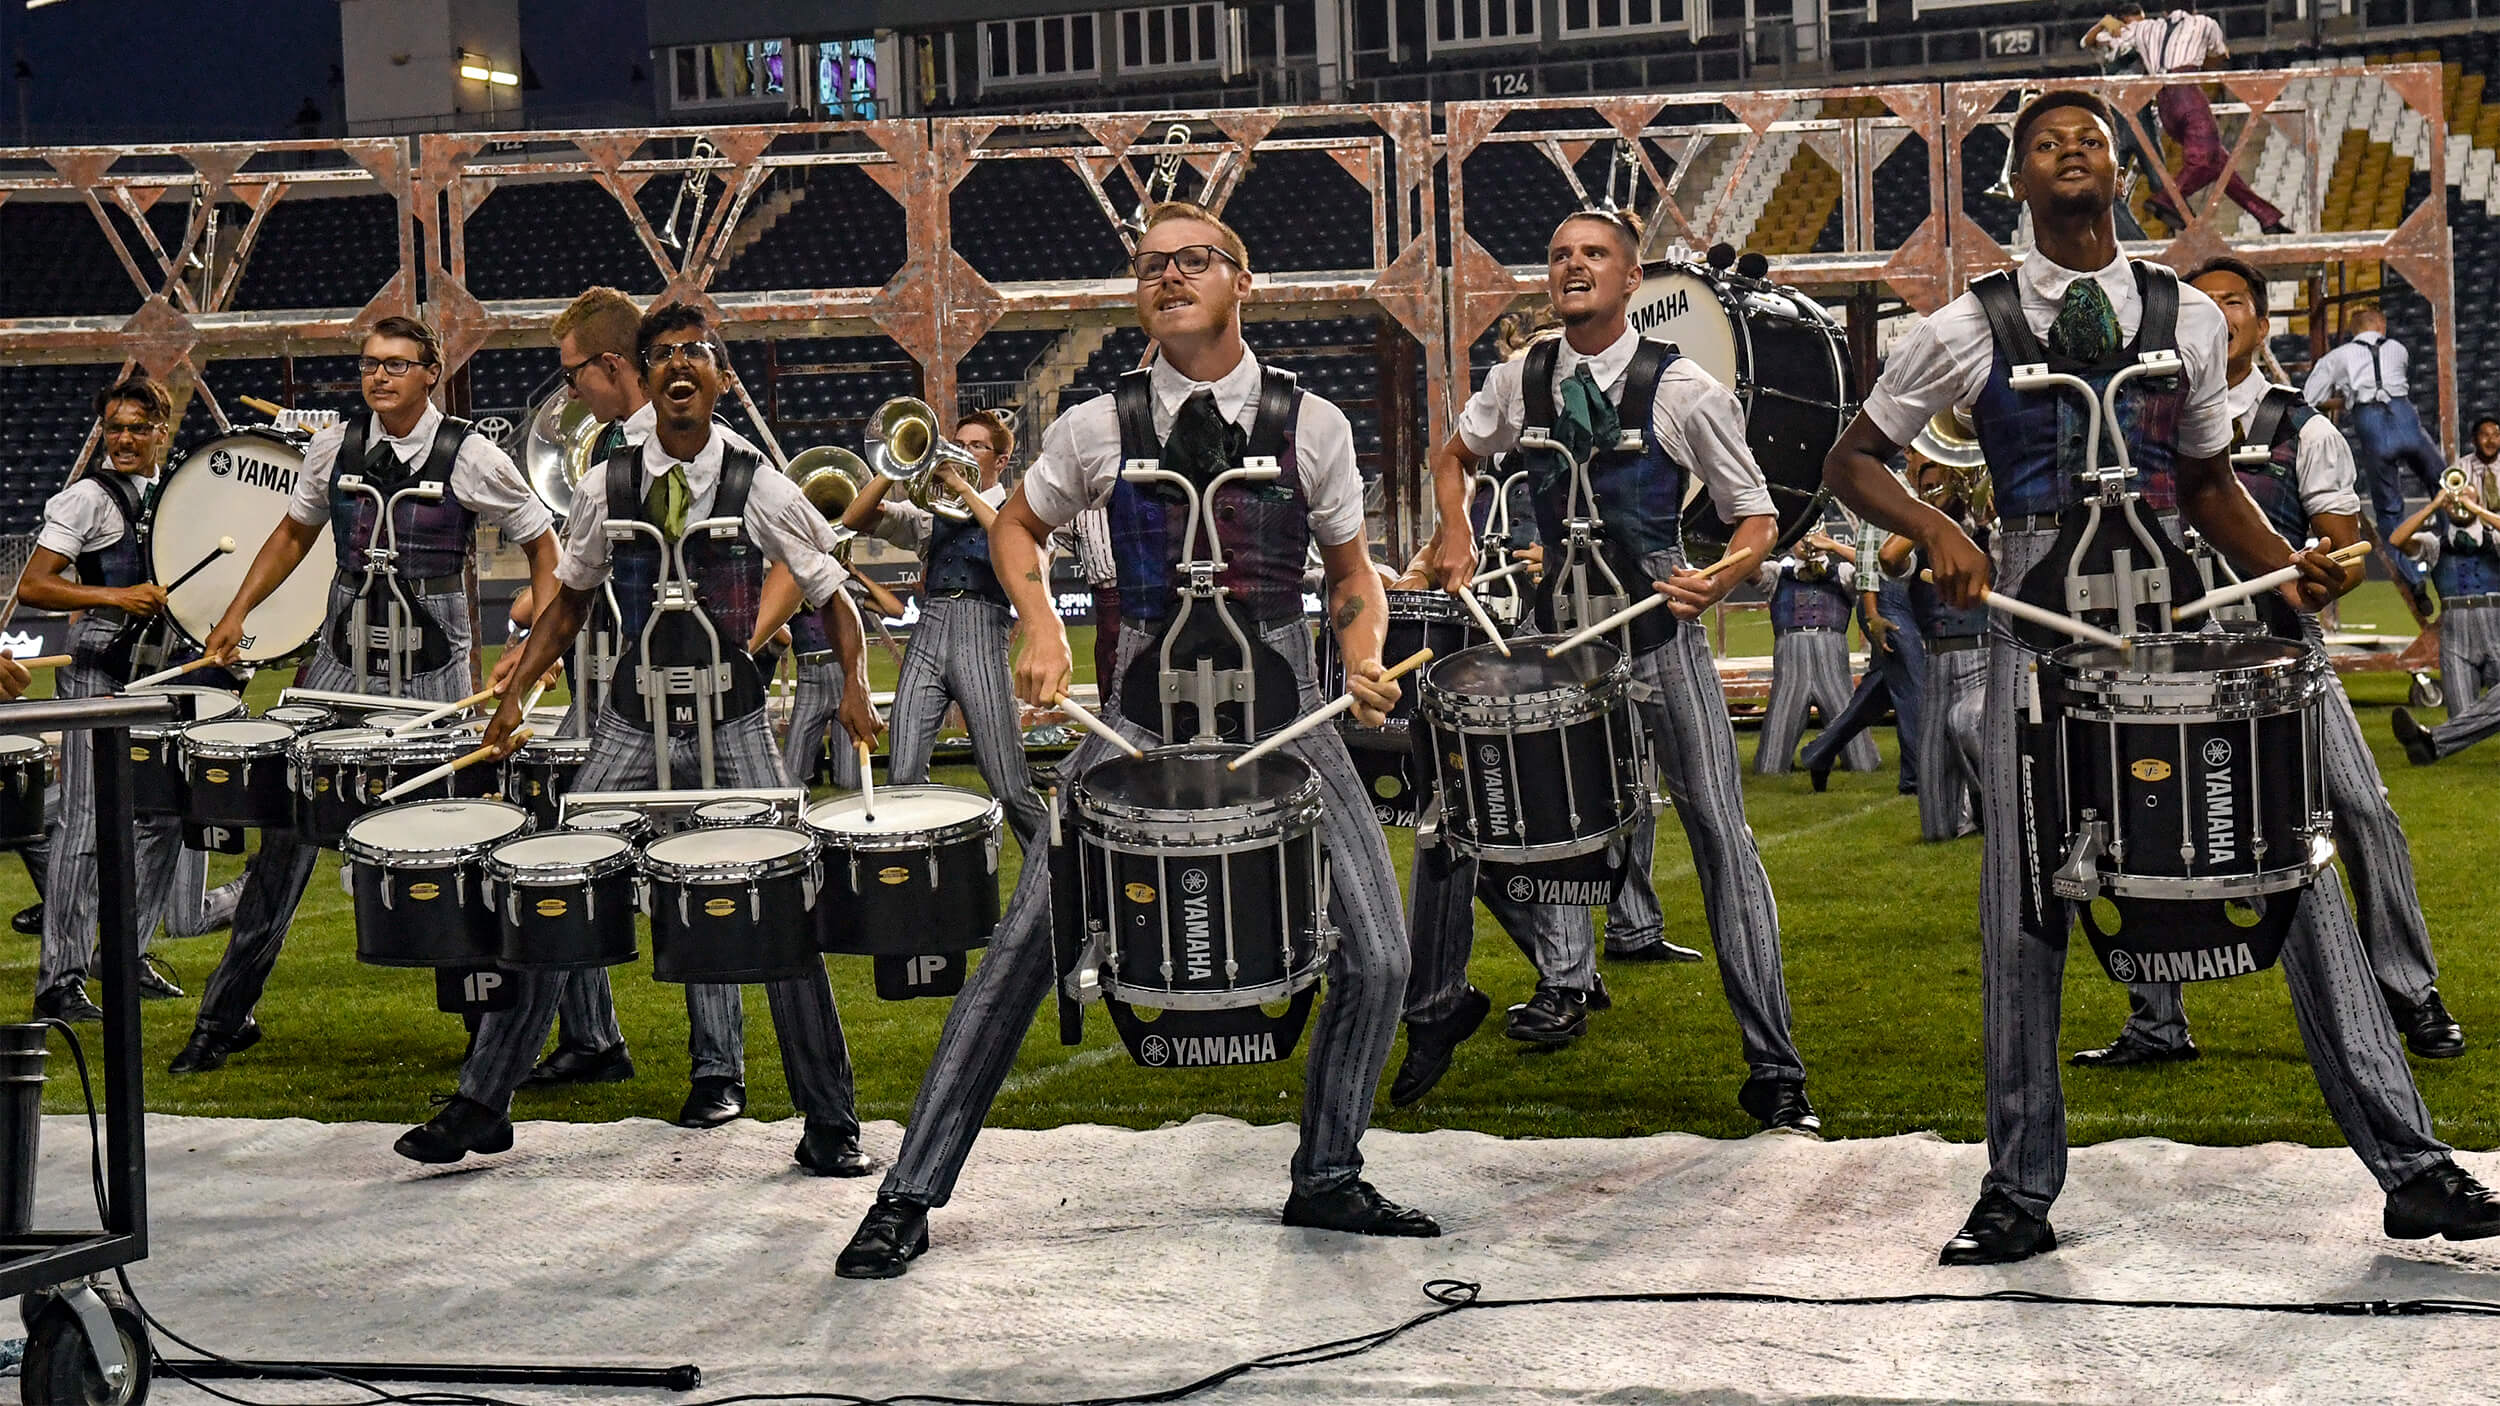 Cavaliers percussion set to return to PASIC stage